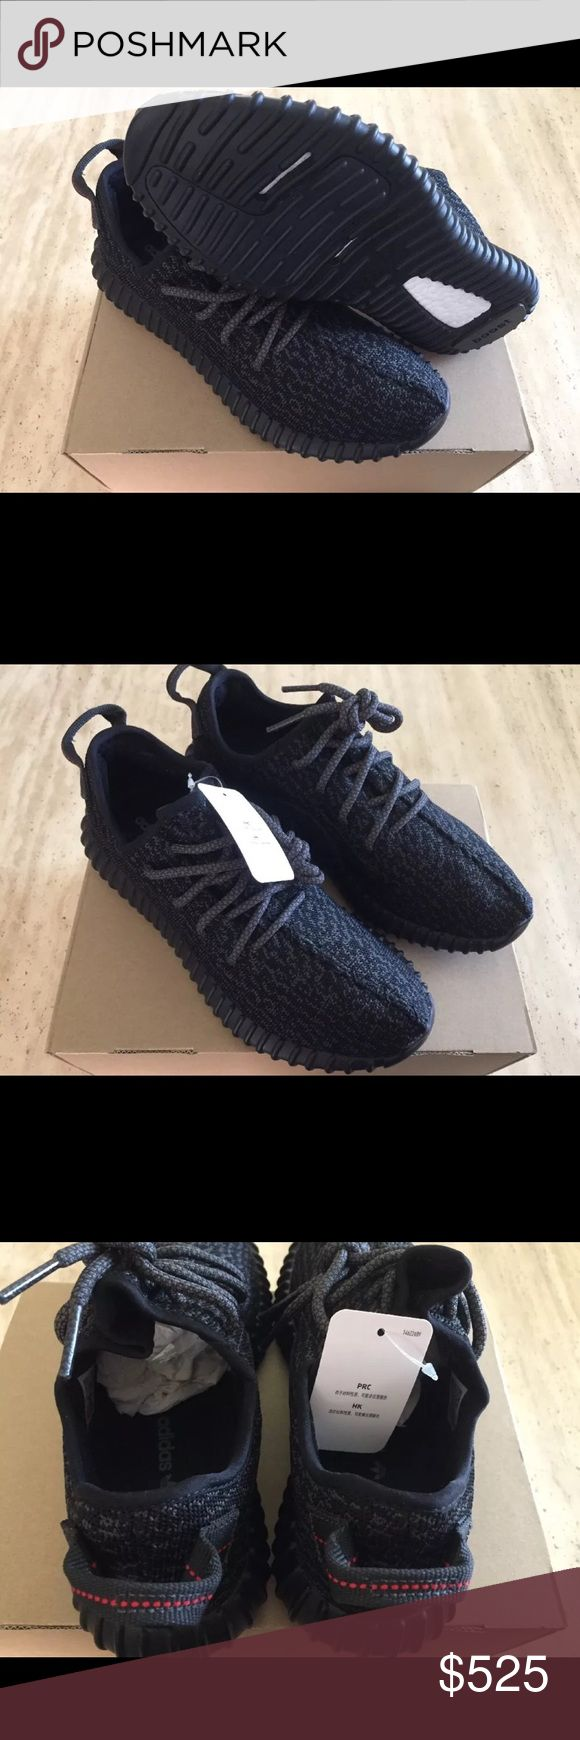 Yeezy 350 Pirate Black Yeezy 350 Boost 350 Pirate Black still available in few women and men sizes. 100% Authentic Deadstock and with receipt. Price is negotiable; text or call me (734) 506-6671. Yeezy Shoes Sneakers